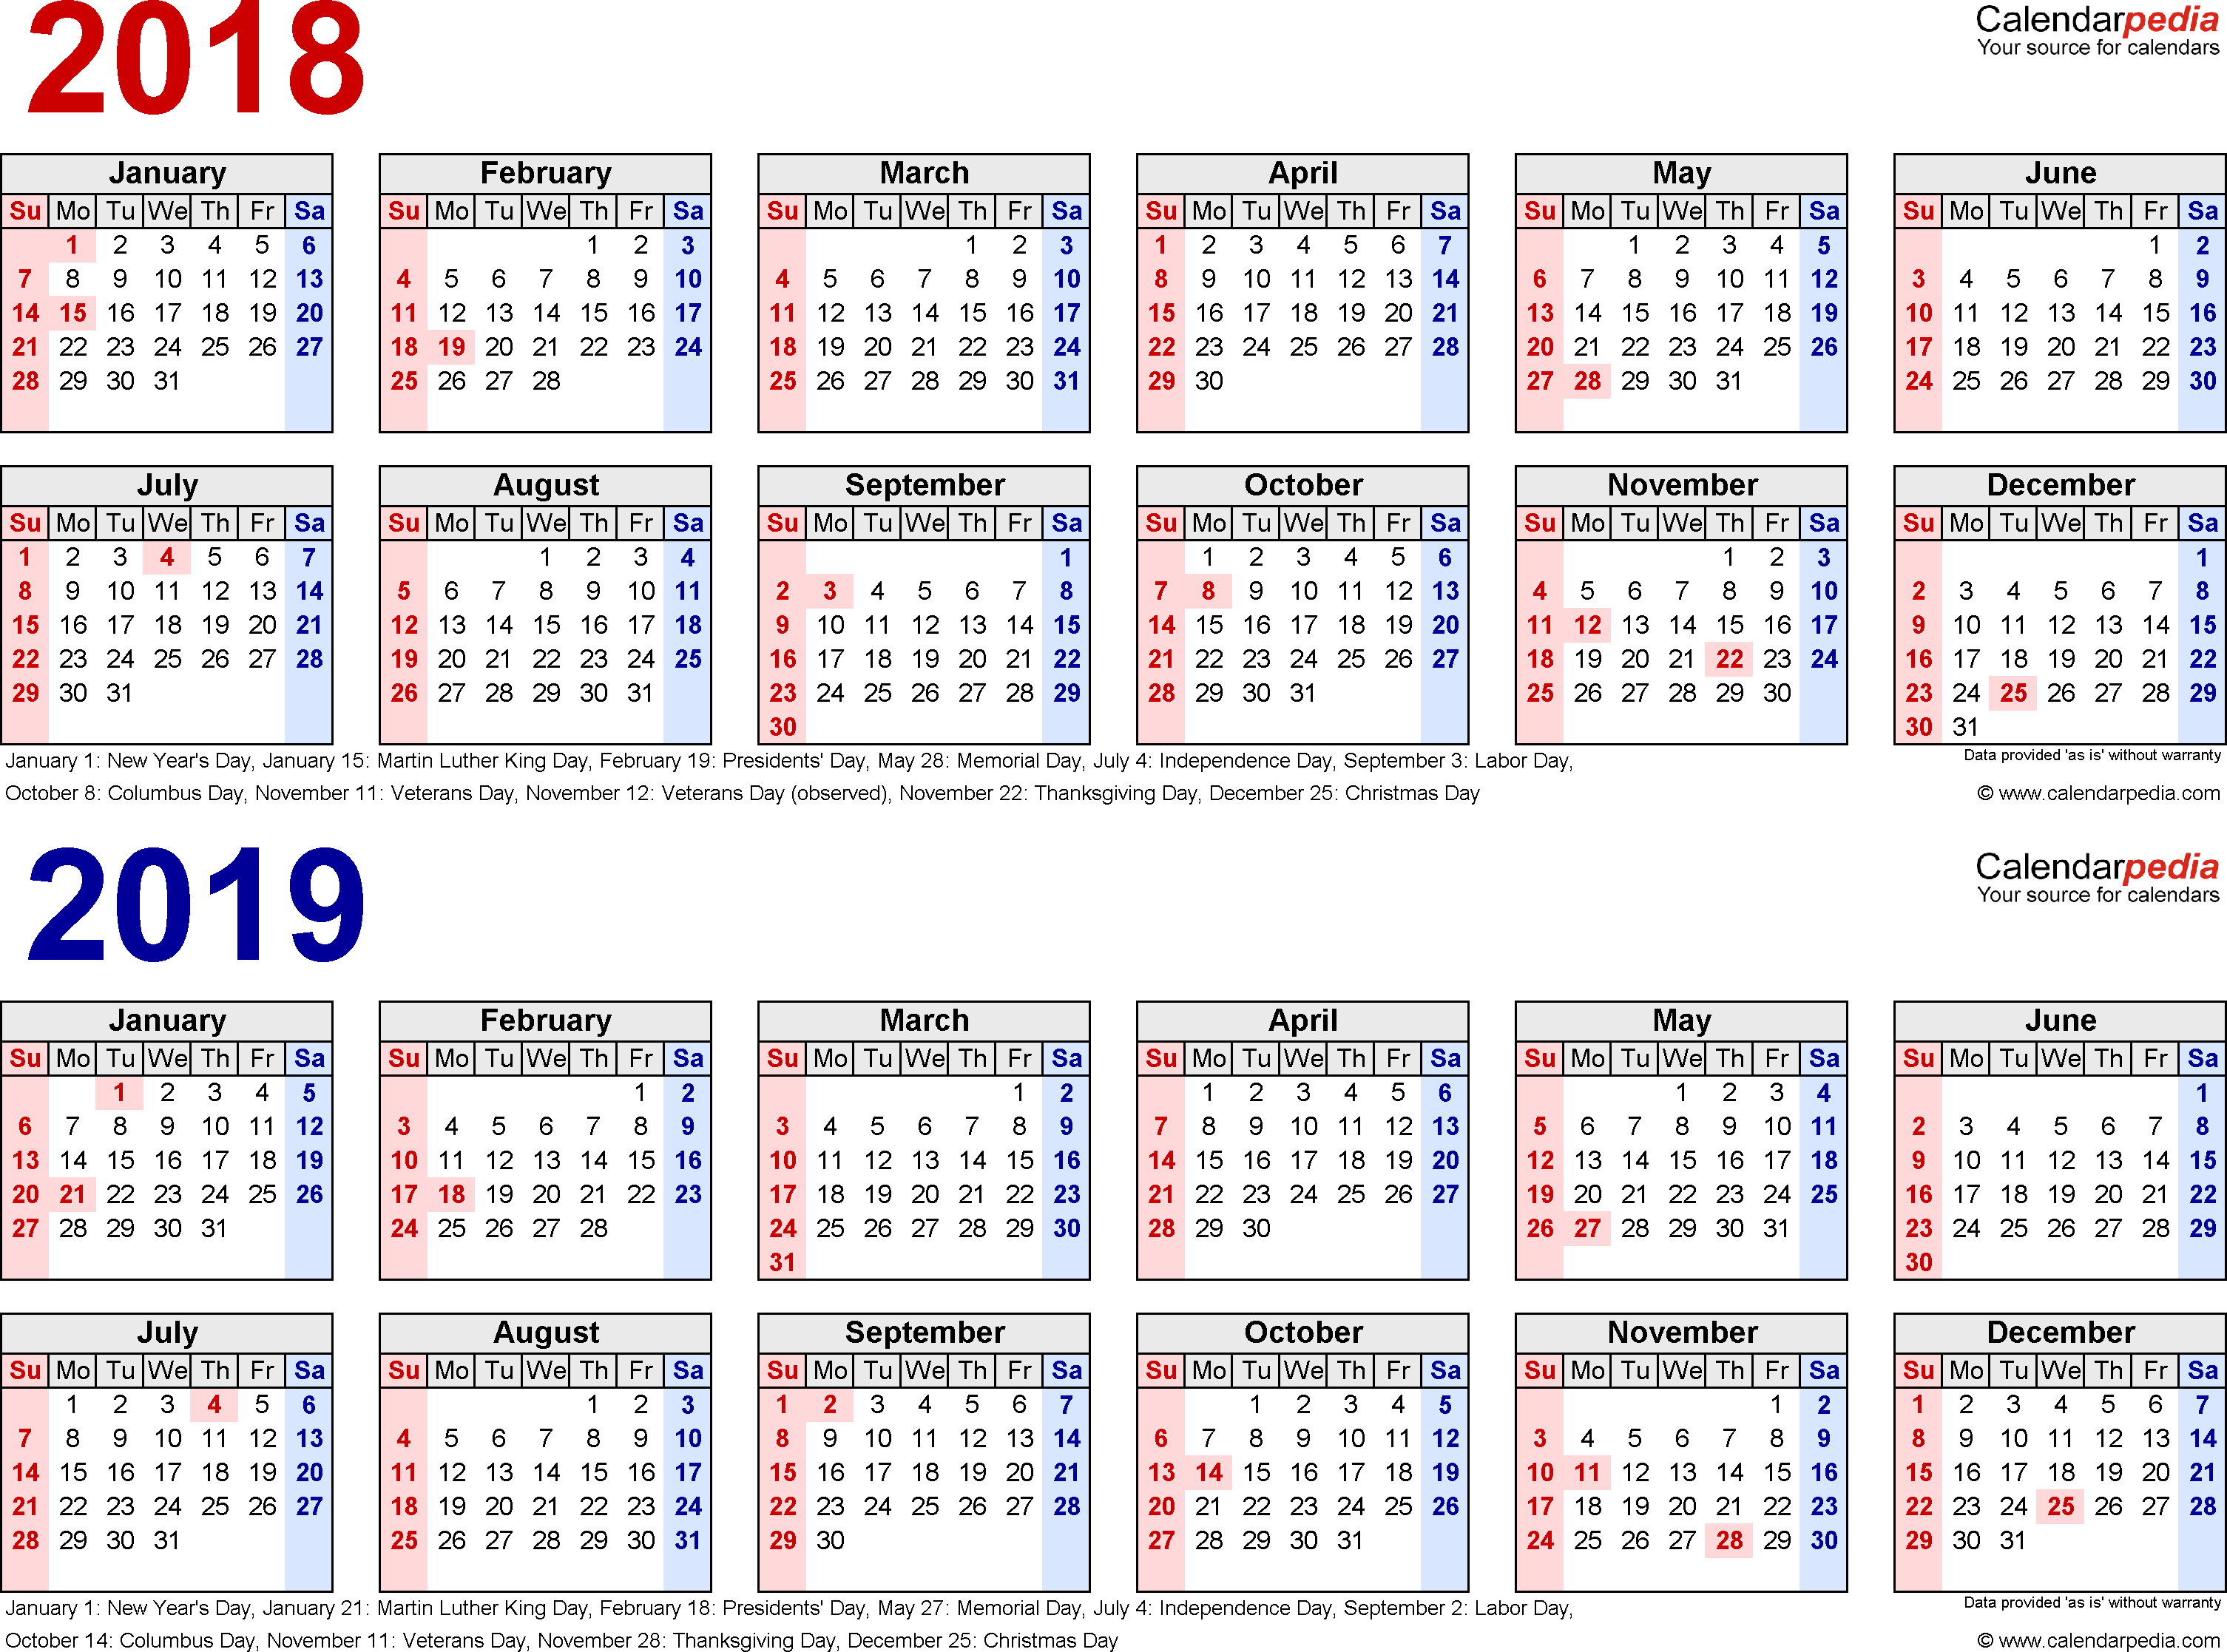 Year Calendar 2018 And 2019 With Free Printable Two PDF Calendars